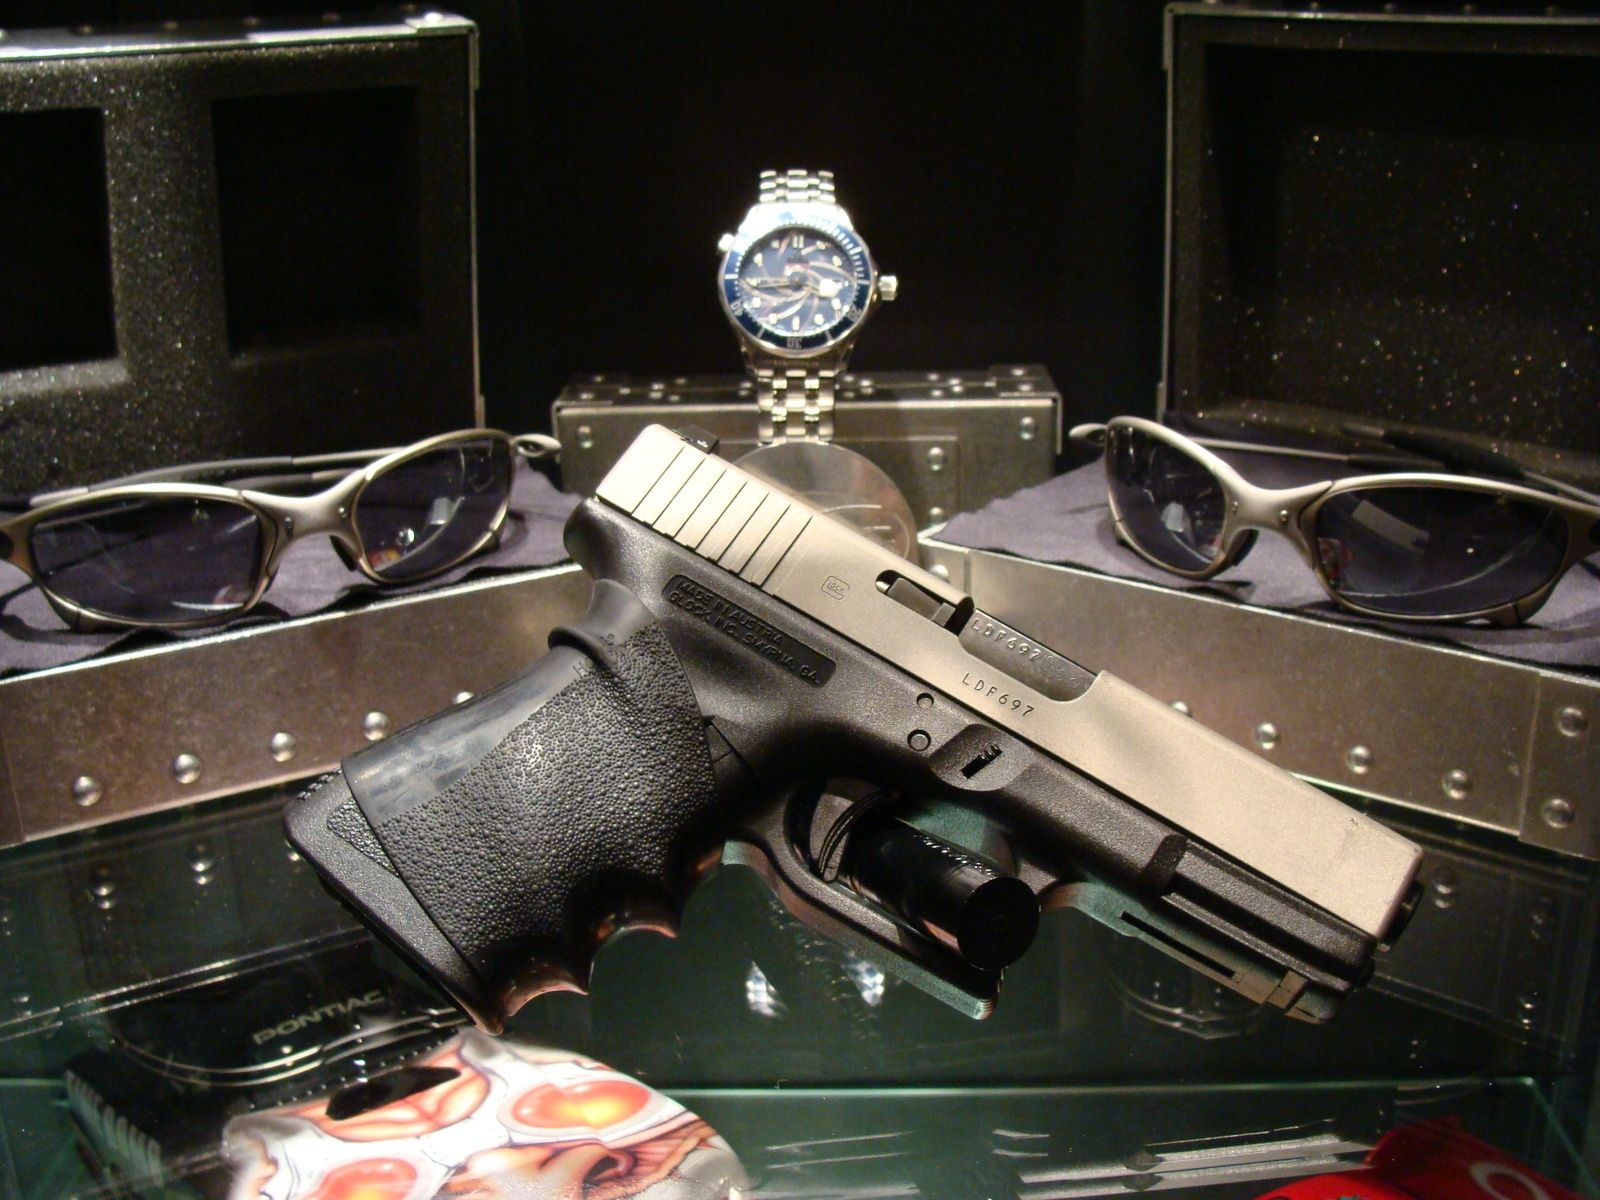 GLOCK Ti-02, And Other Ti-02 Collection  (XMAN) - DSC04863.JPG